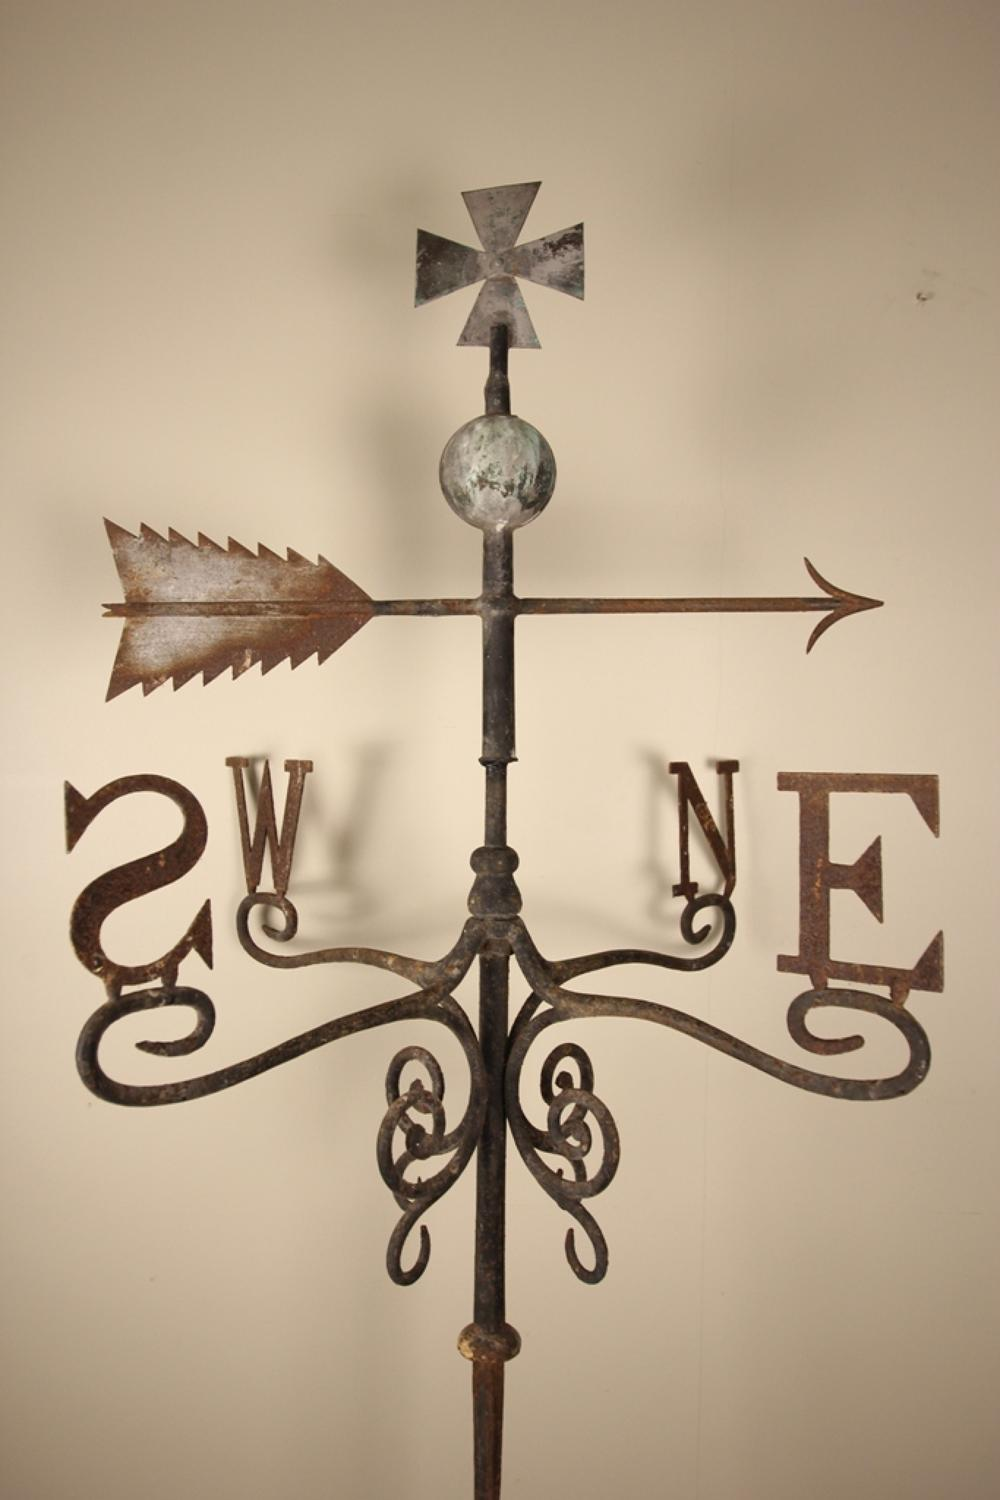 Large 19th C. Iron & Copper Weathervane